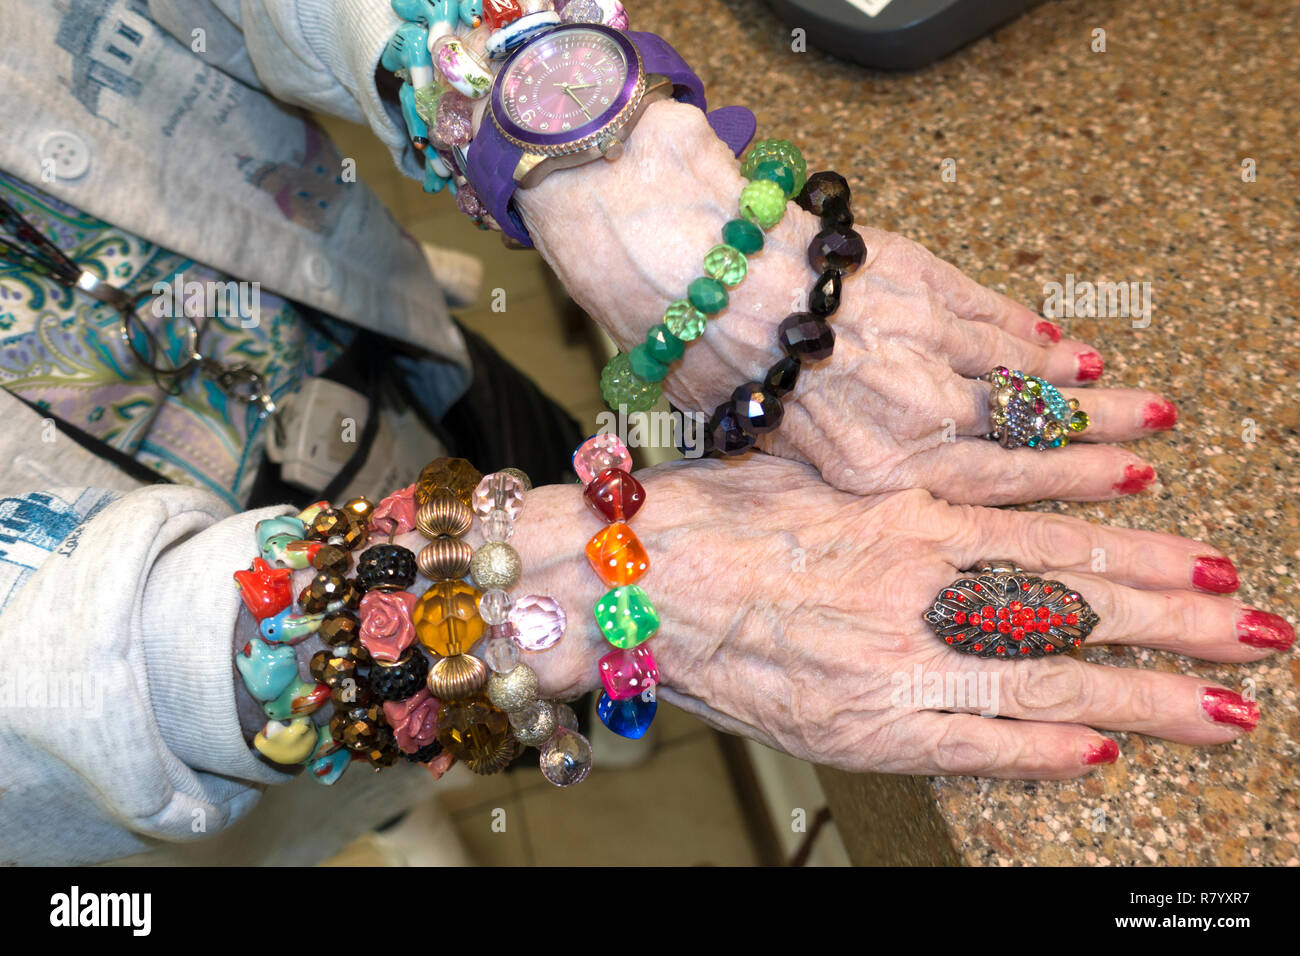 Elderly woman modeling the many gorgeous bracelets and jewelry that she made. Downers Grove Illinois IL USA - Stock Image